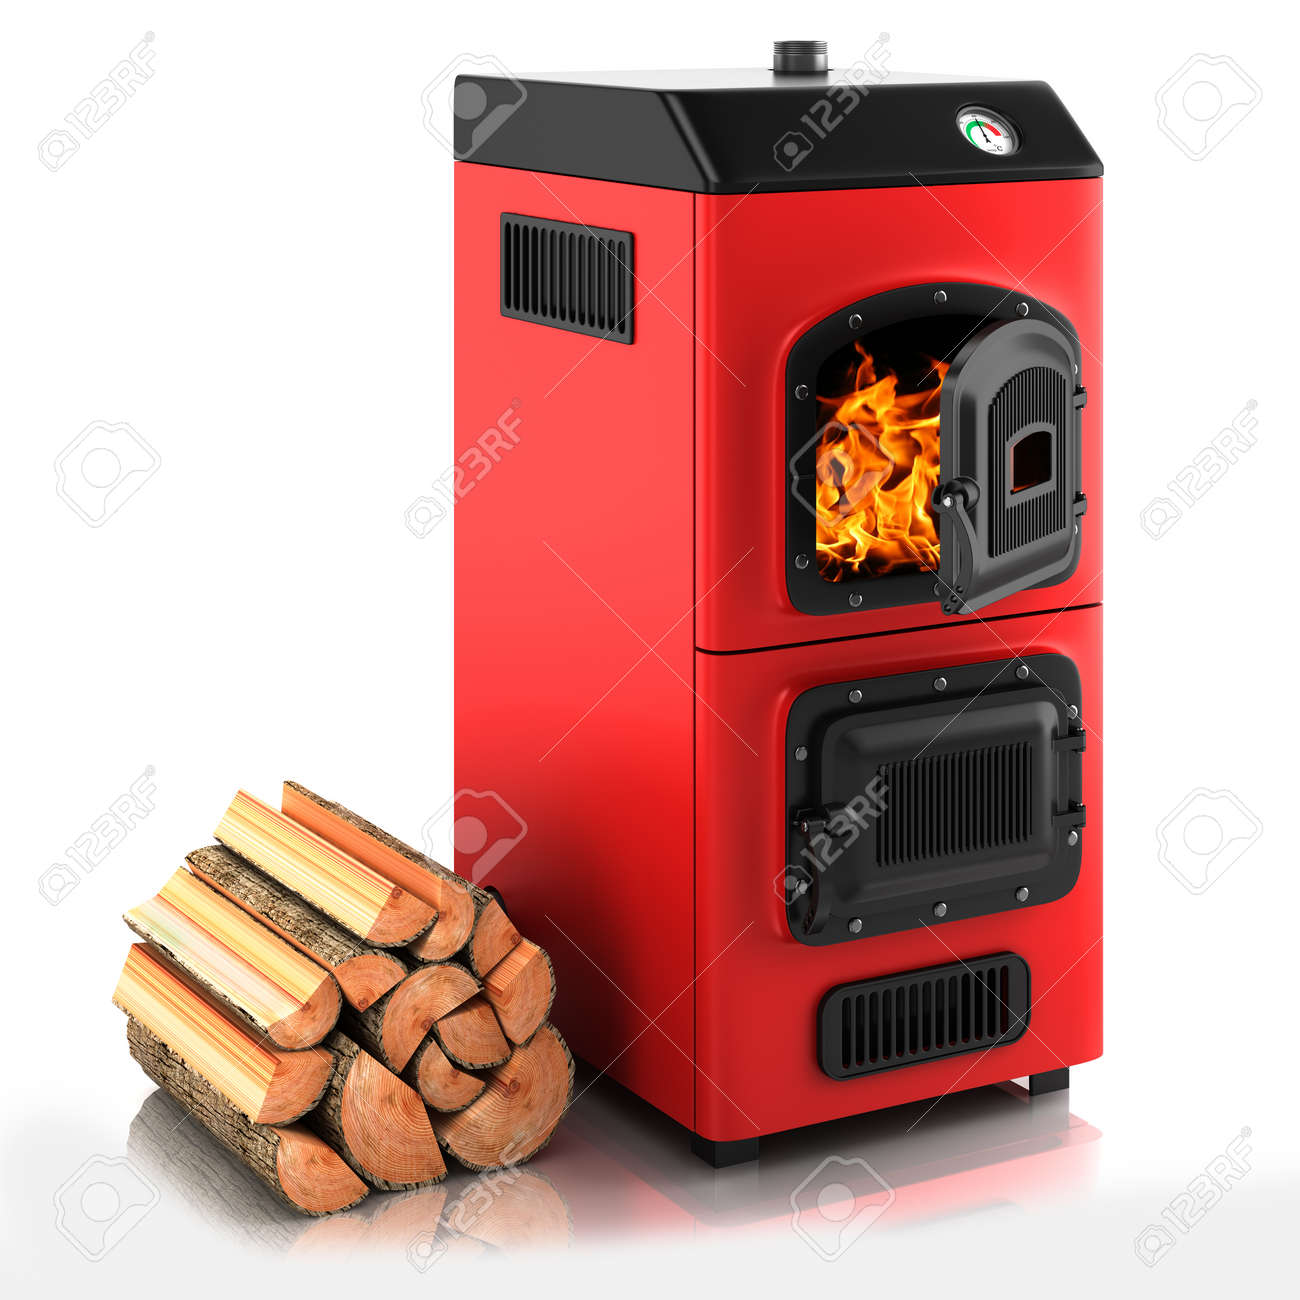 coal burning stove images u0026 stock pictures royalty free coal